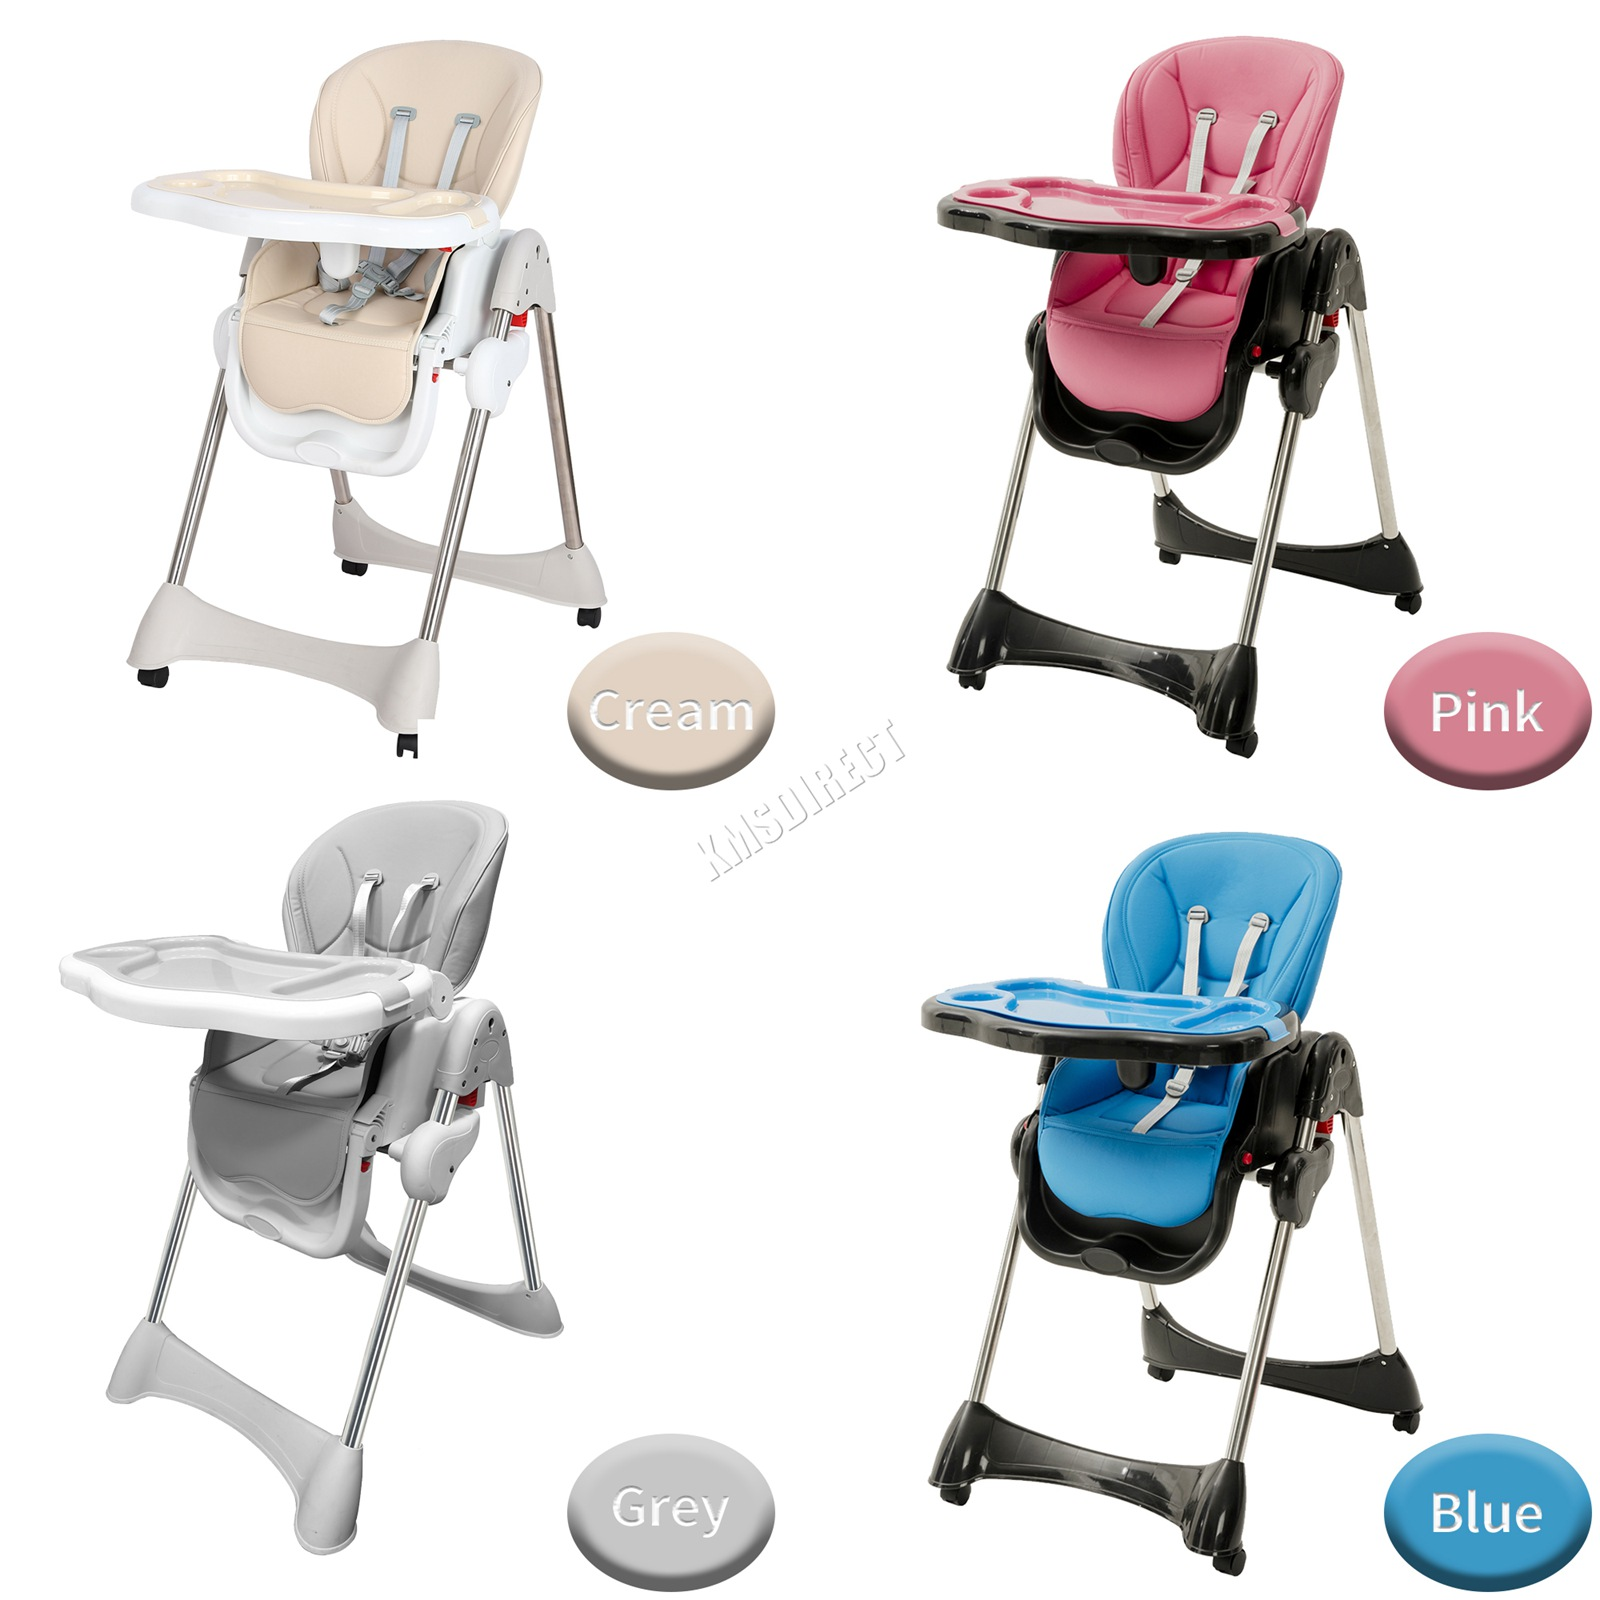 Galactica Portable Baby High Chair Infant Soft Leather Feeding